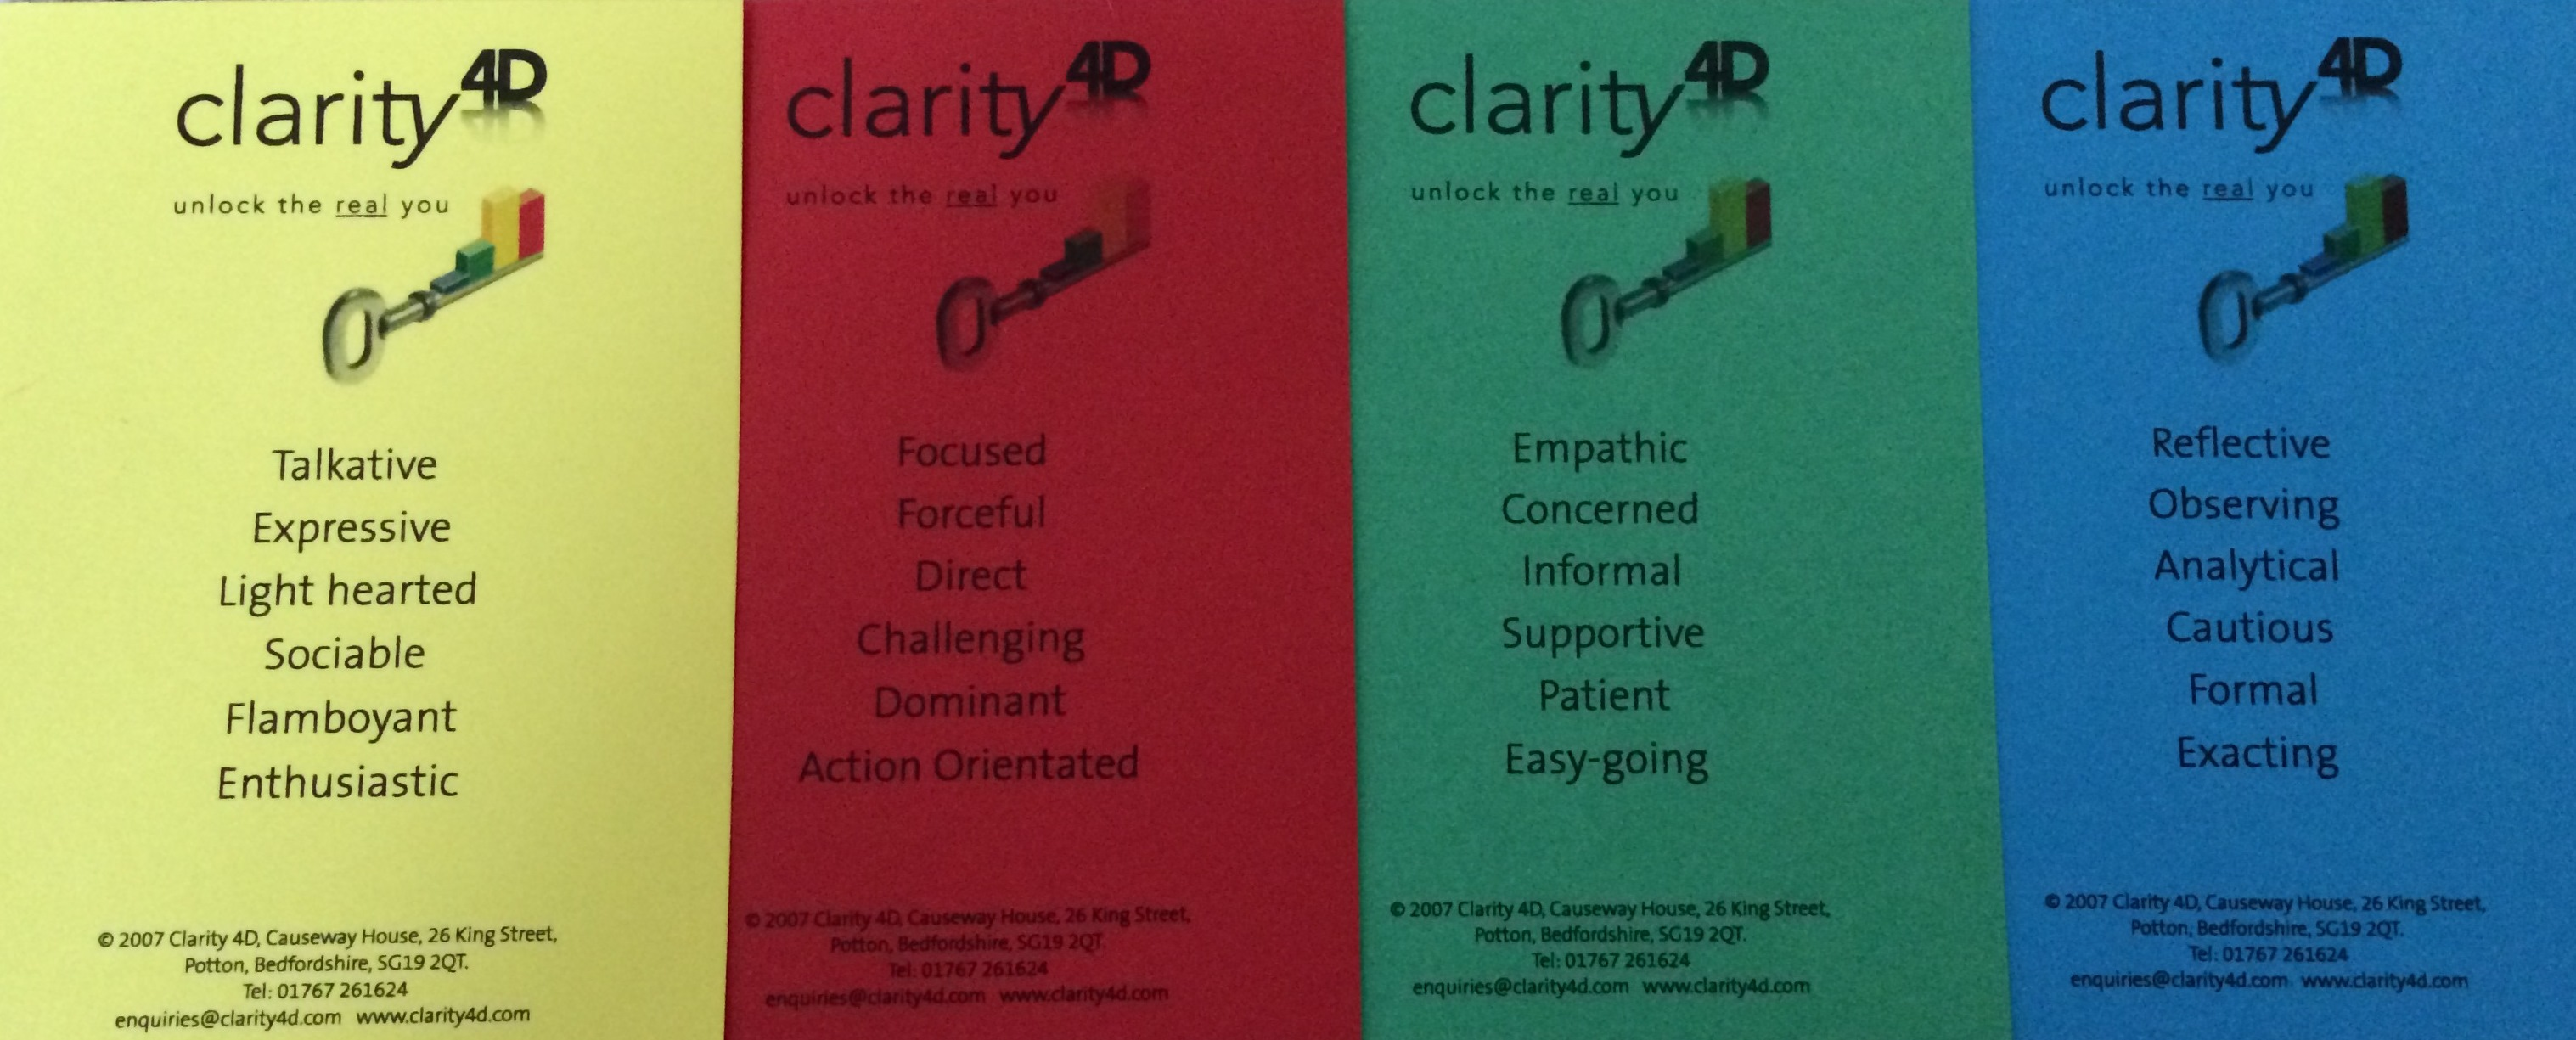 clarity_4d_wide